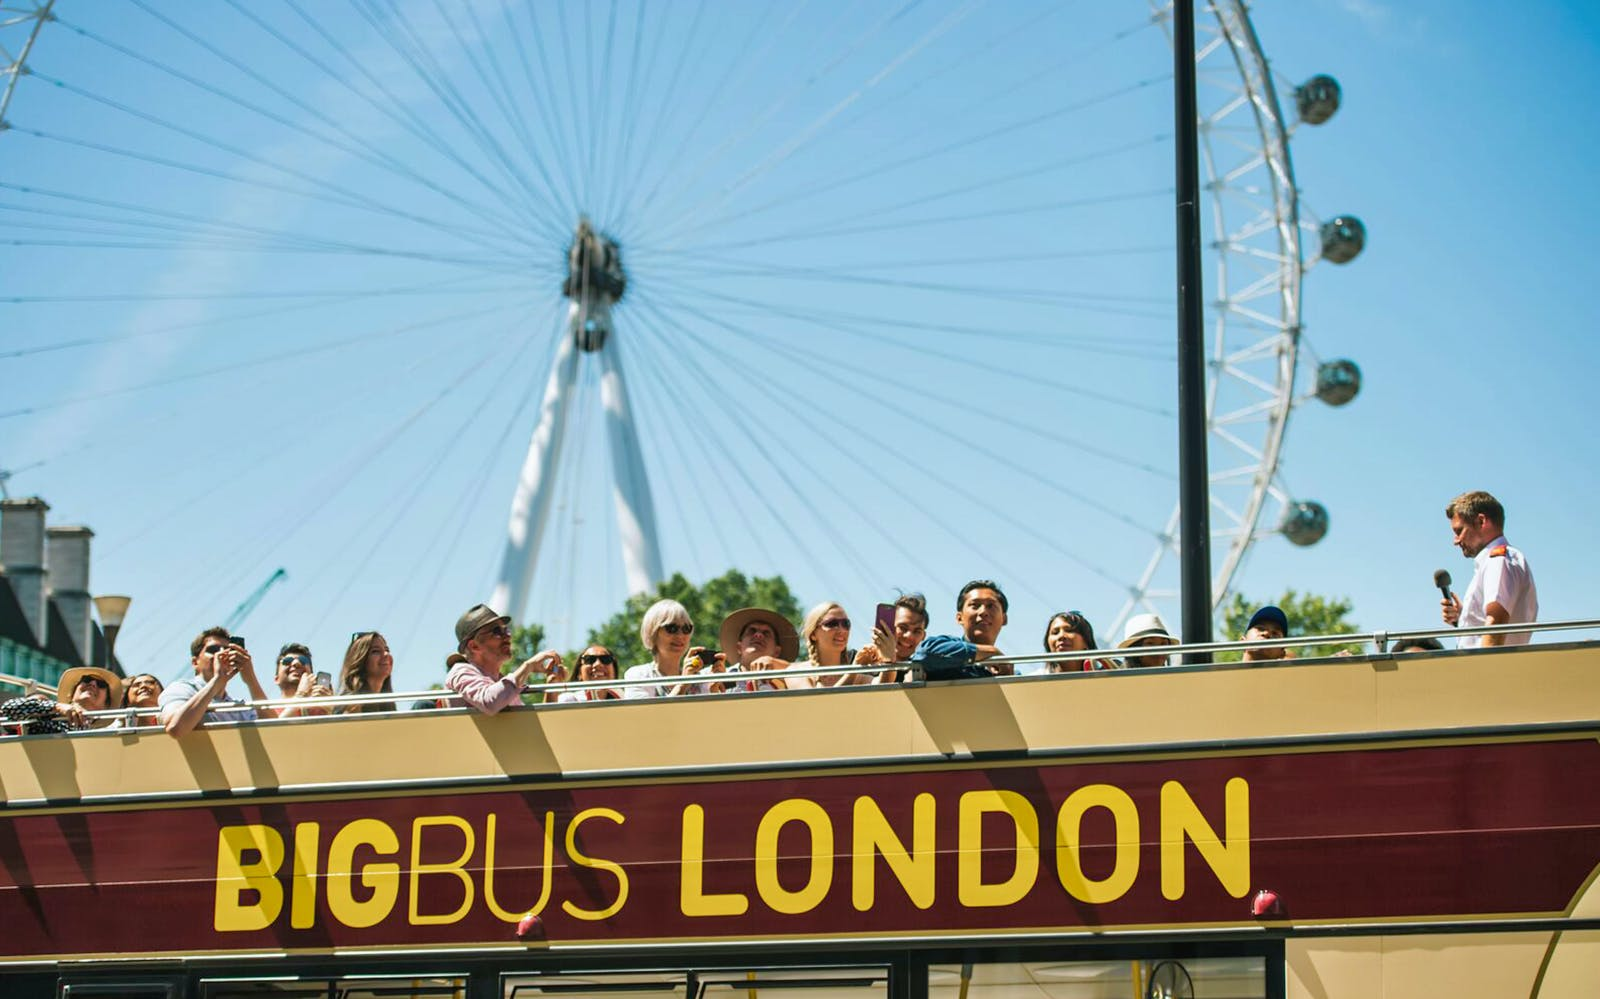 london eye fast track entry + hop-on hop-off classic ticket -1